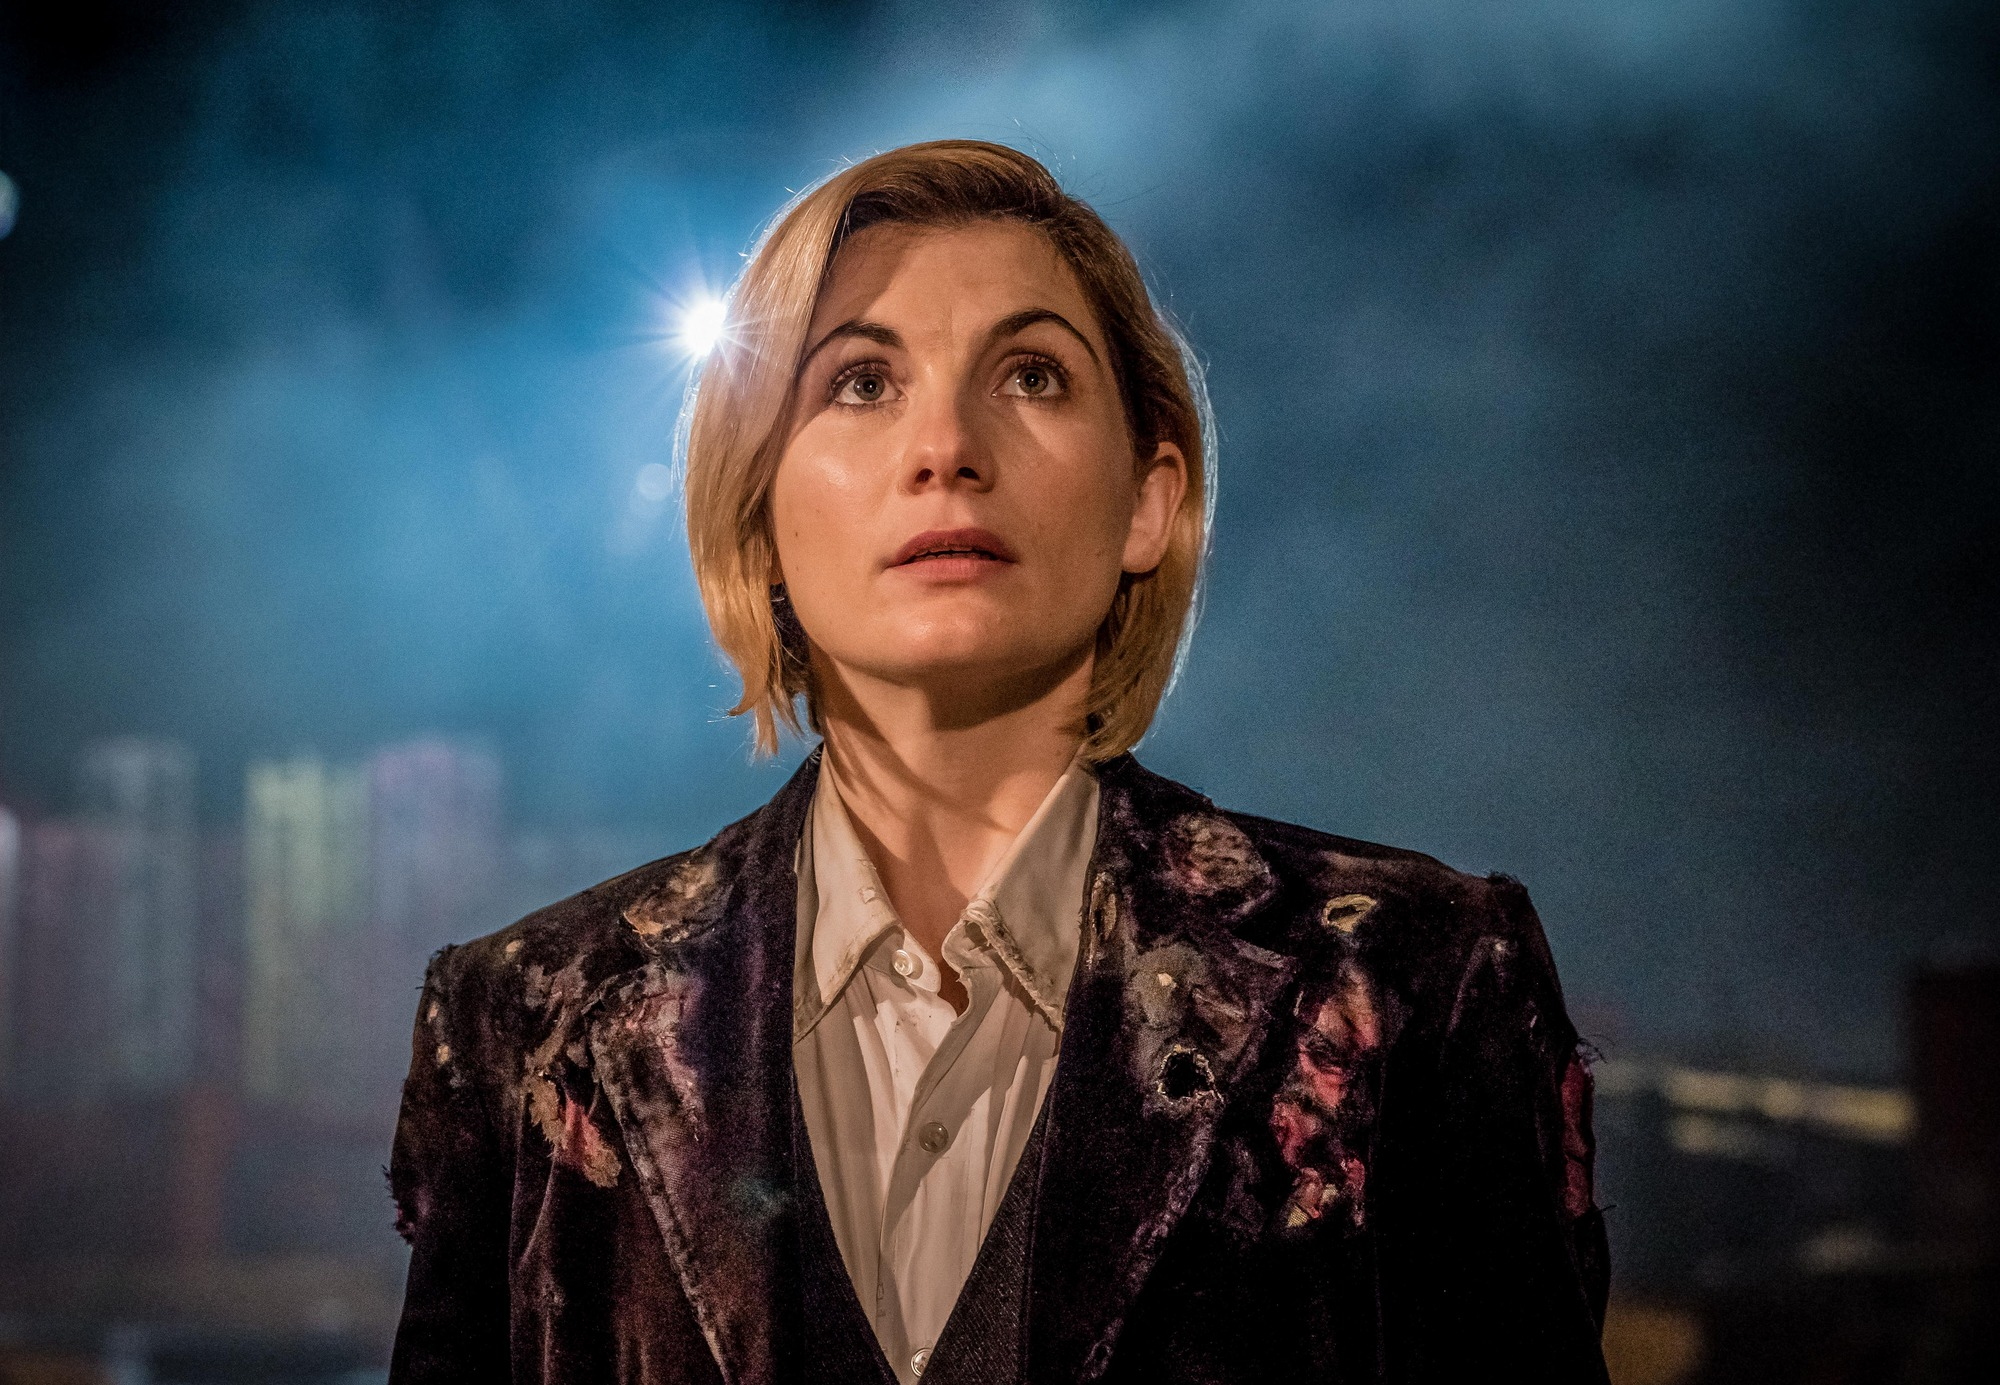 Doctor Who series 12 will arrive 'very early' in 2020 as Jodie Whittaker 'can't wait' to return